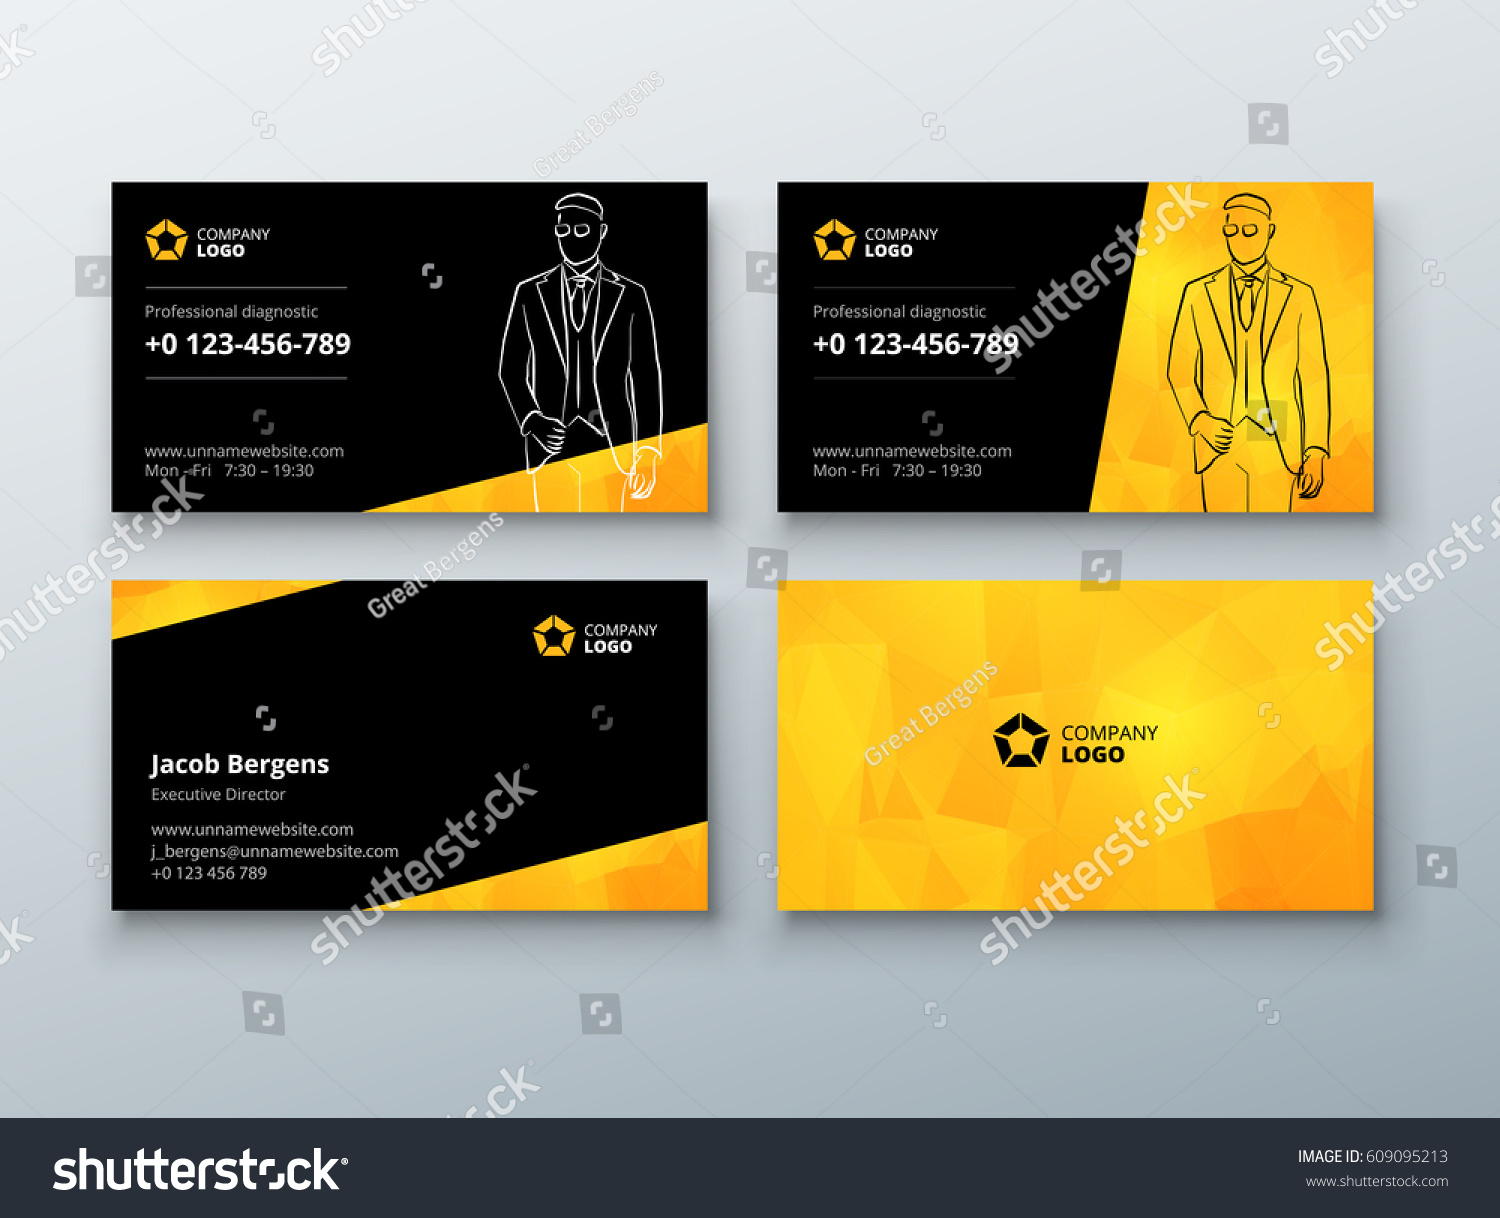 Yellow Business Cards Gallery - Free Business Cards